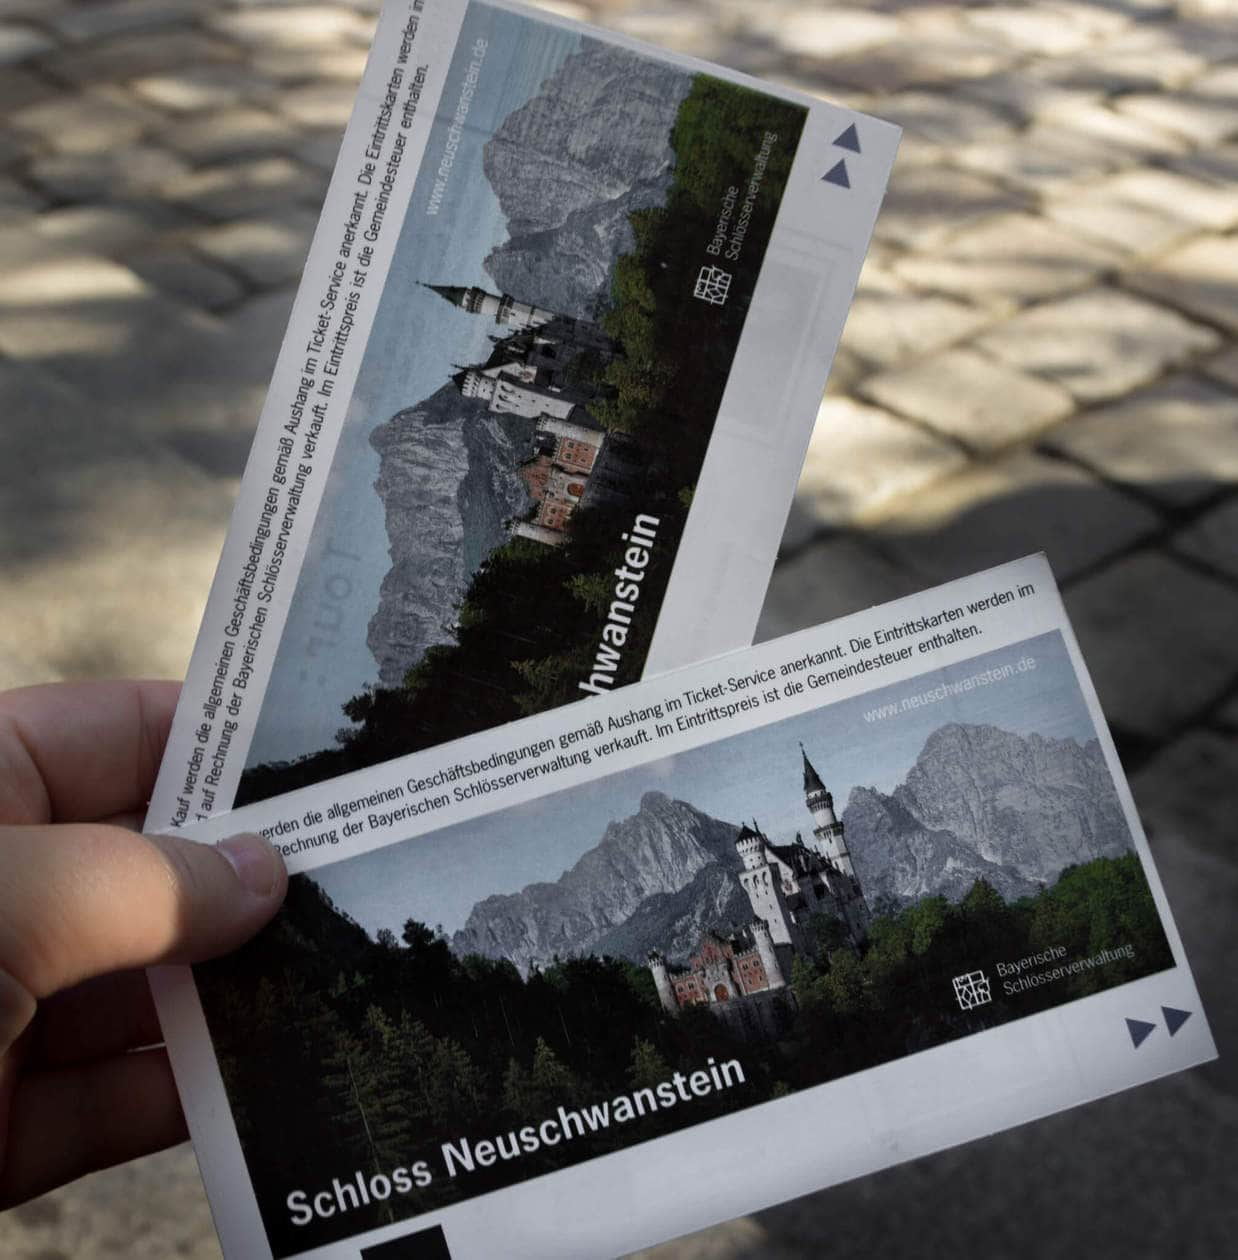 Buy Tickets to Neuschwanstein Castle